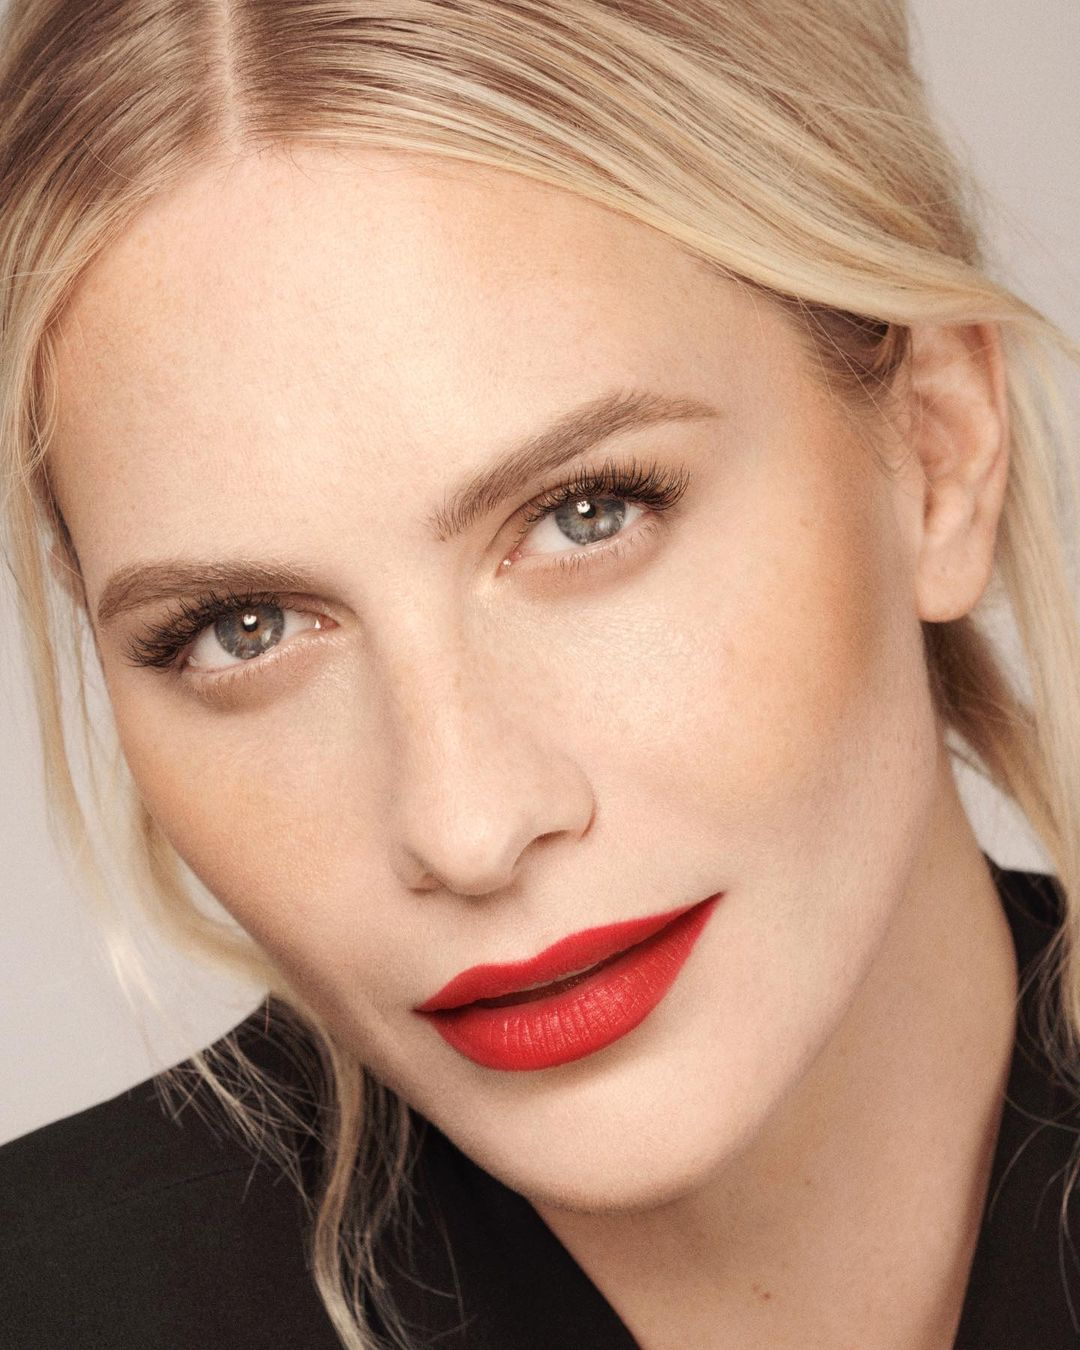 Poppy Delevingne is increasing her popularity with 1.7 million followers on Instagram 2